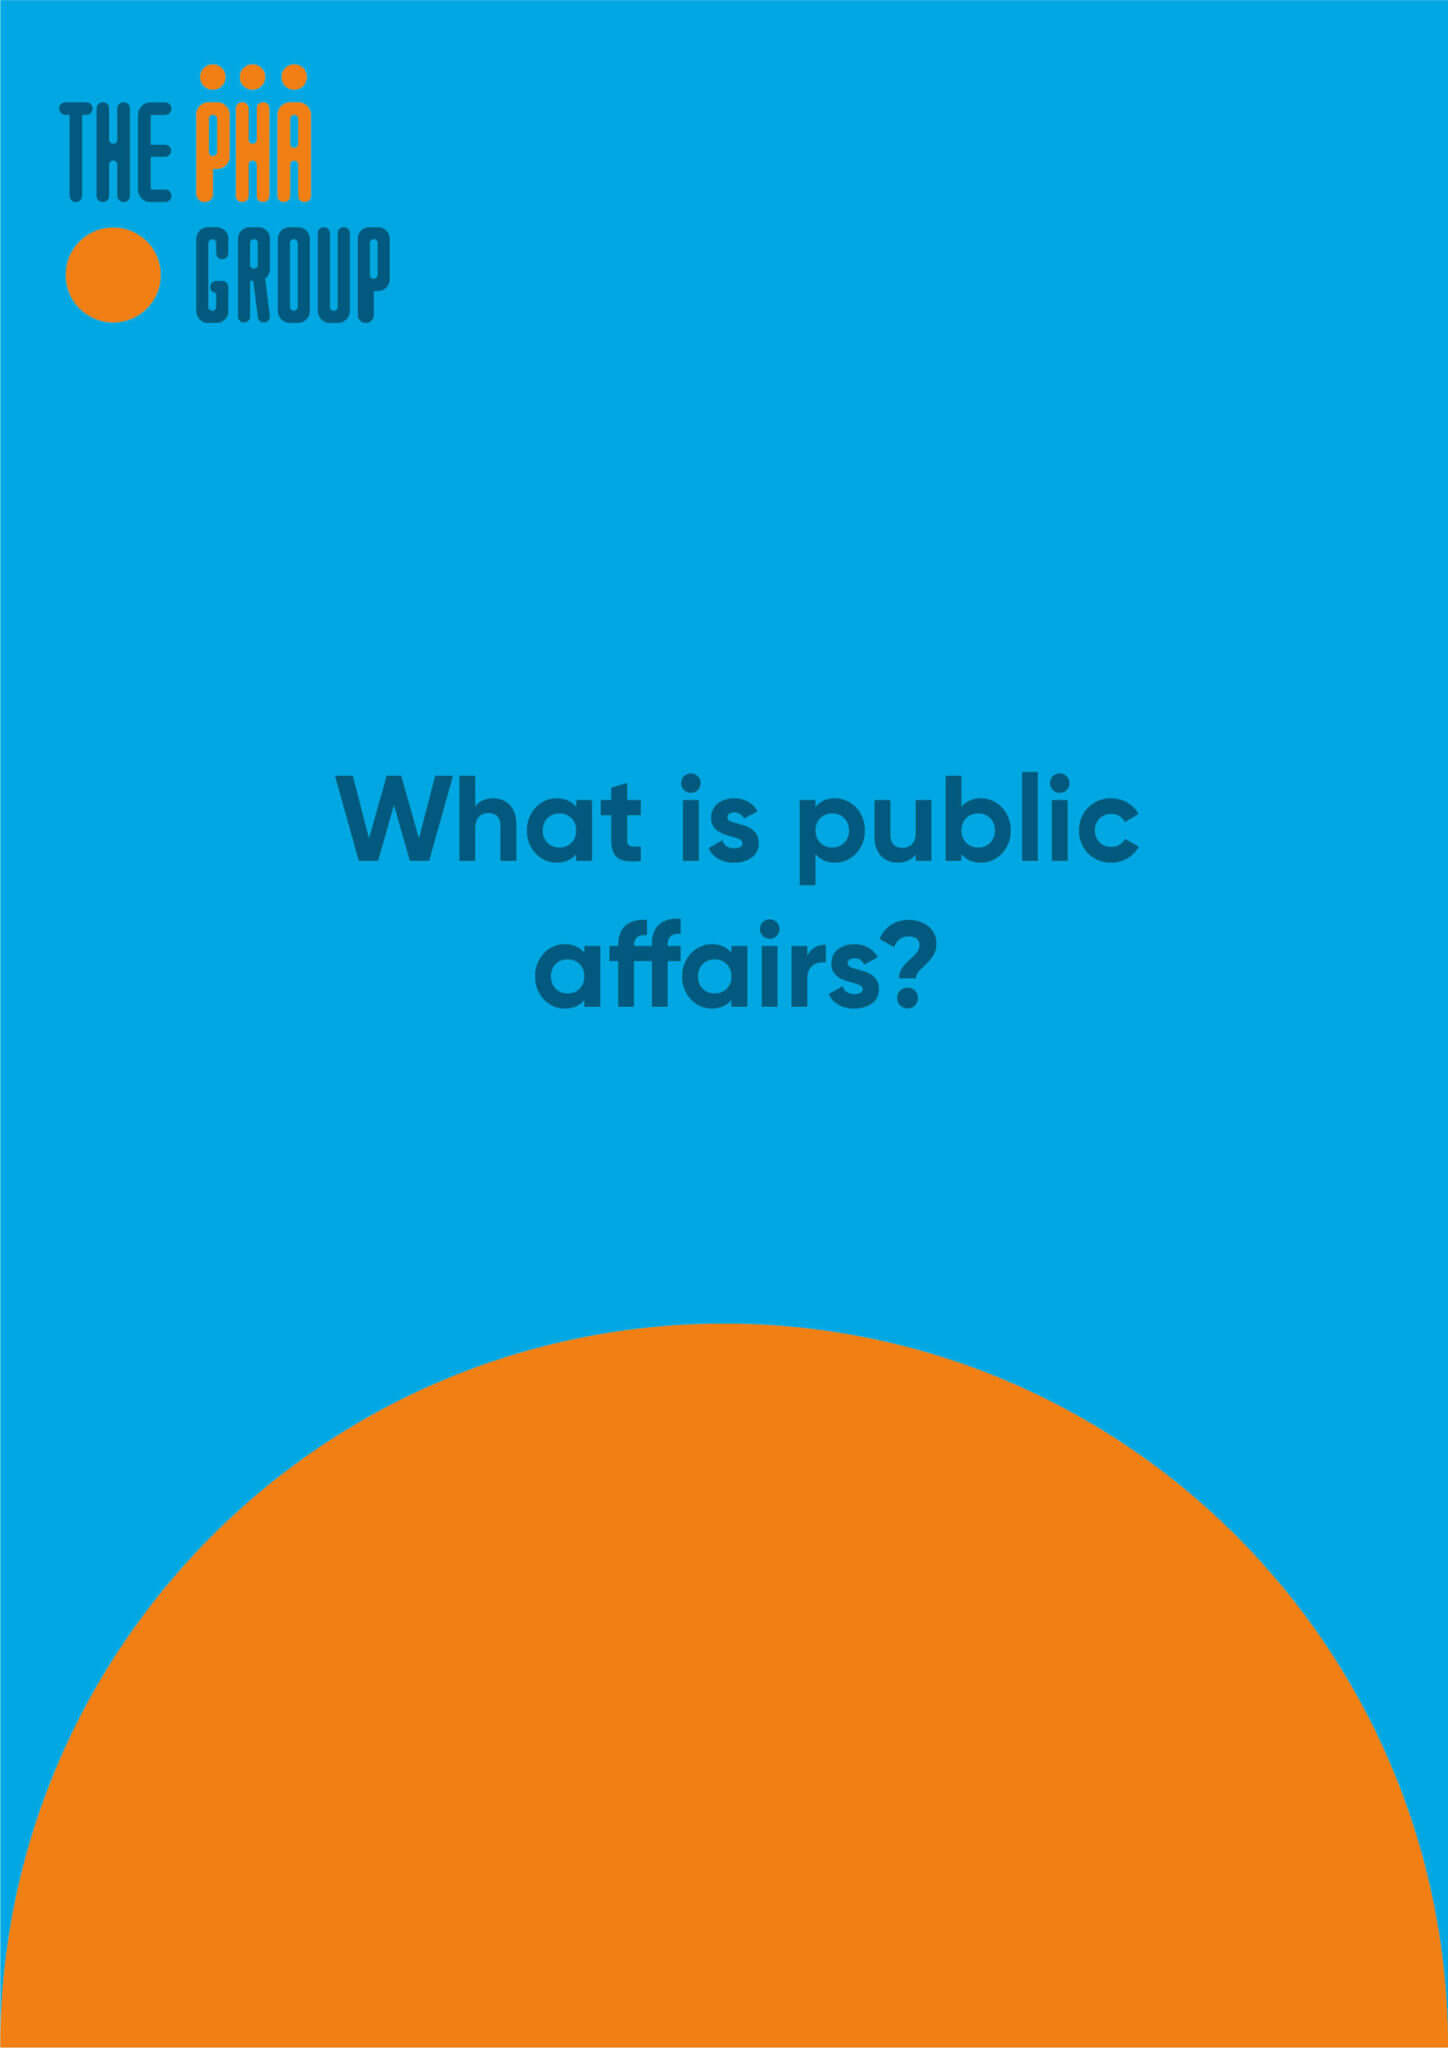 What is public affairs?